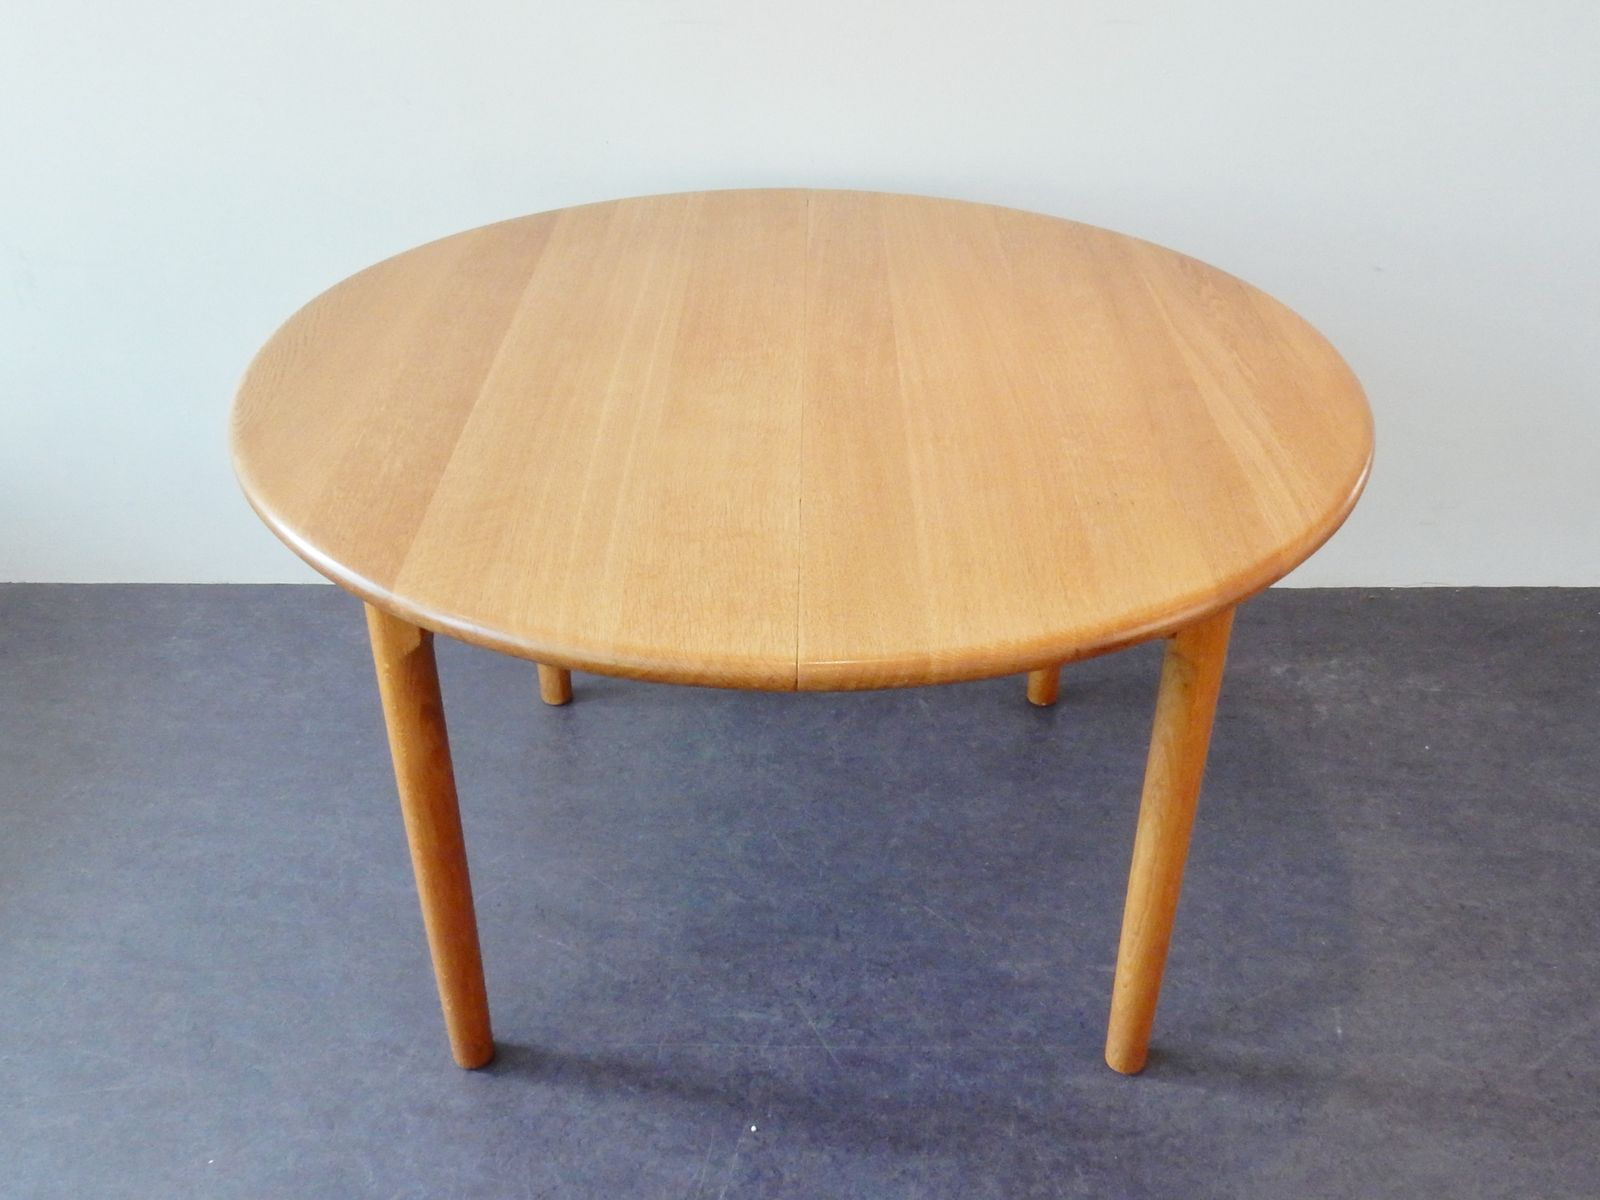 Round extendable danish oak dining table from kp m bler 1970s for sale at pamono - Oak extendable dining table ...